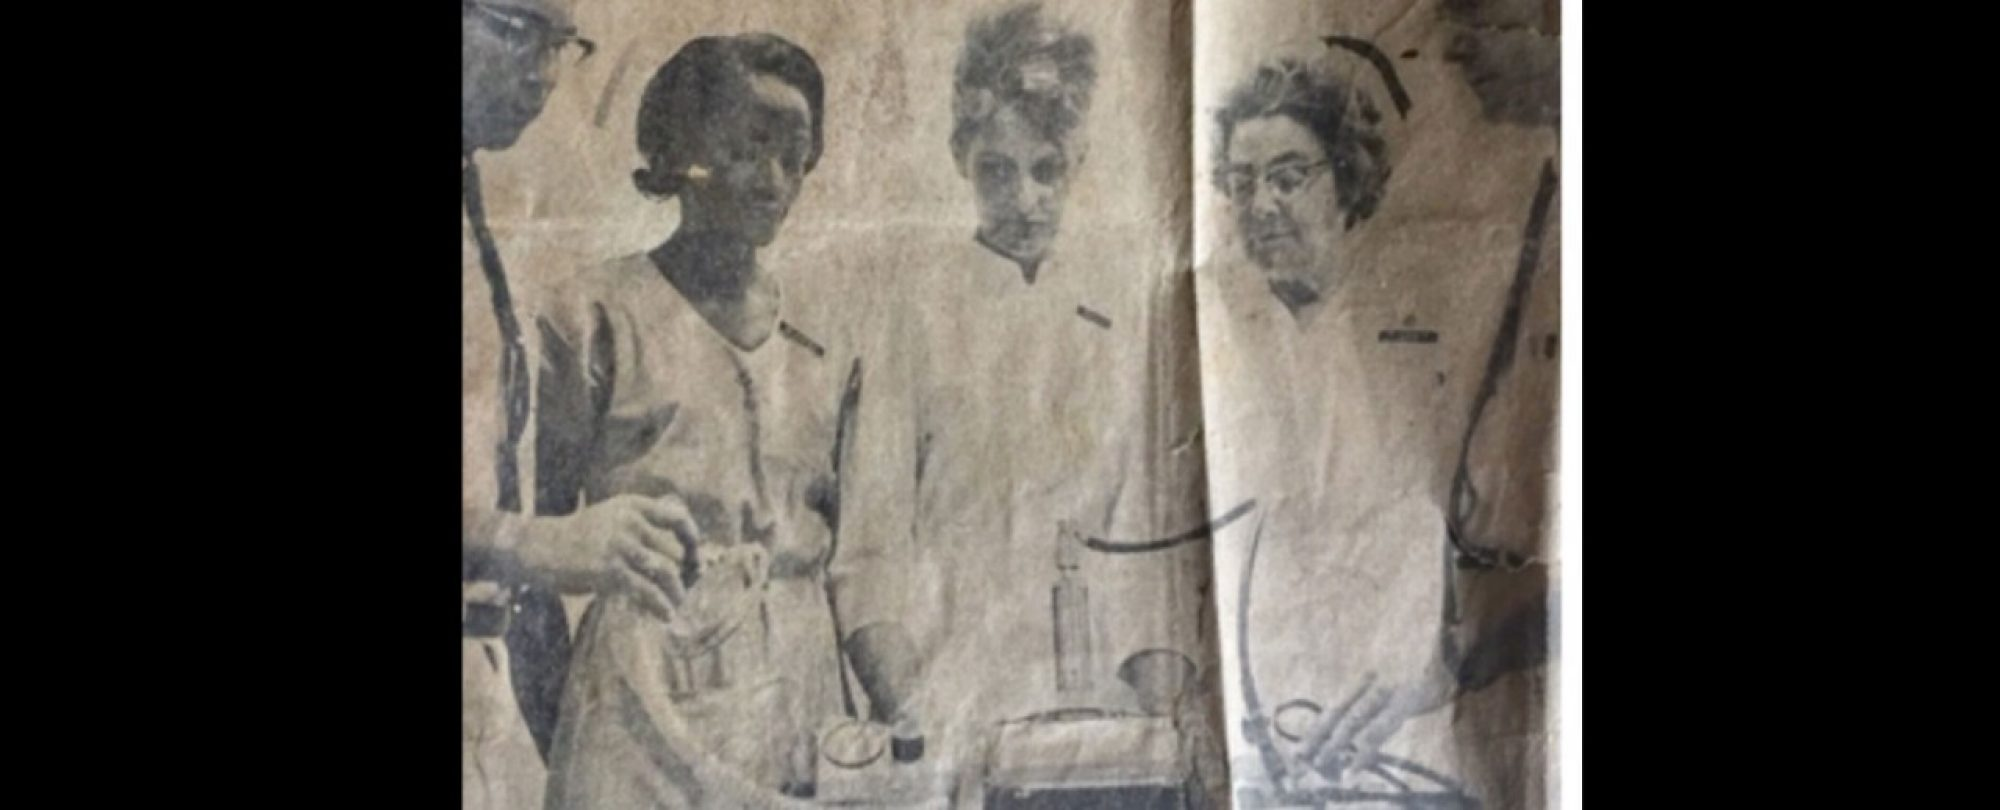 Miss Edna with three colleagues